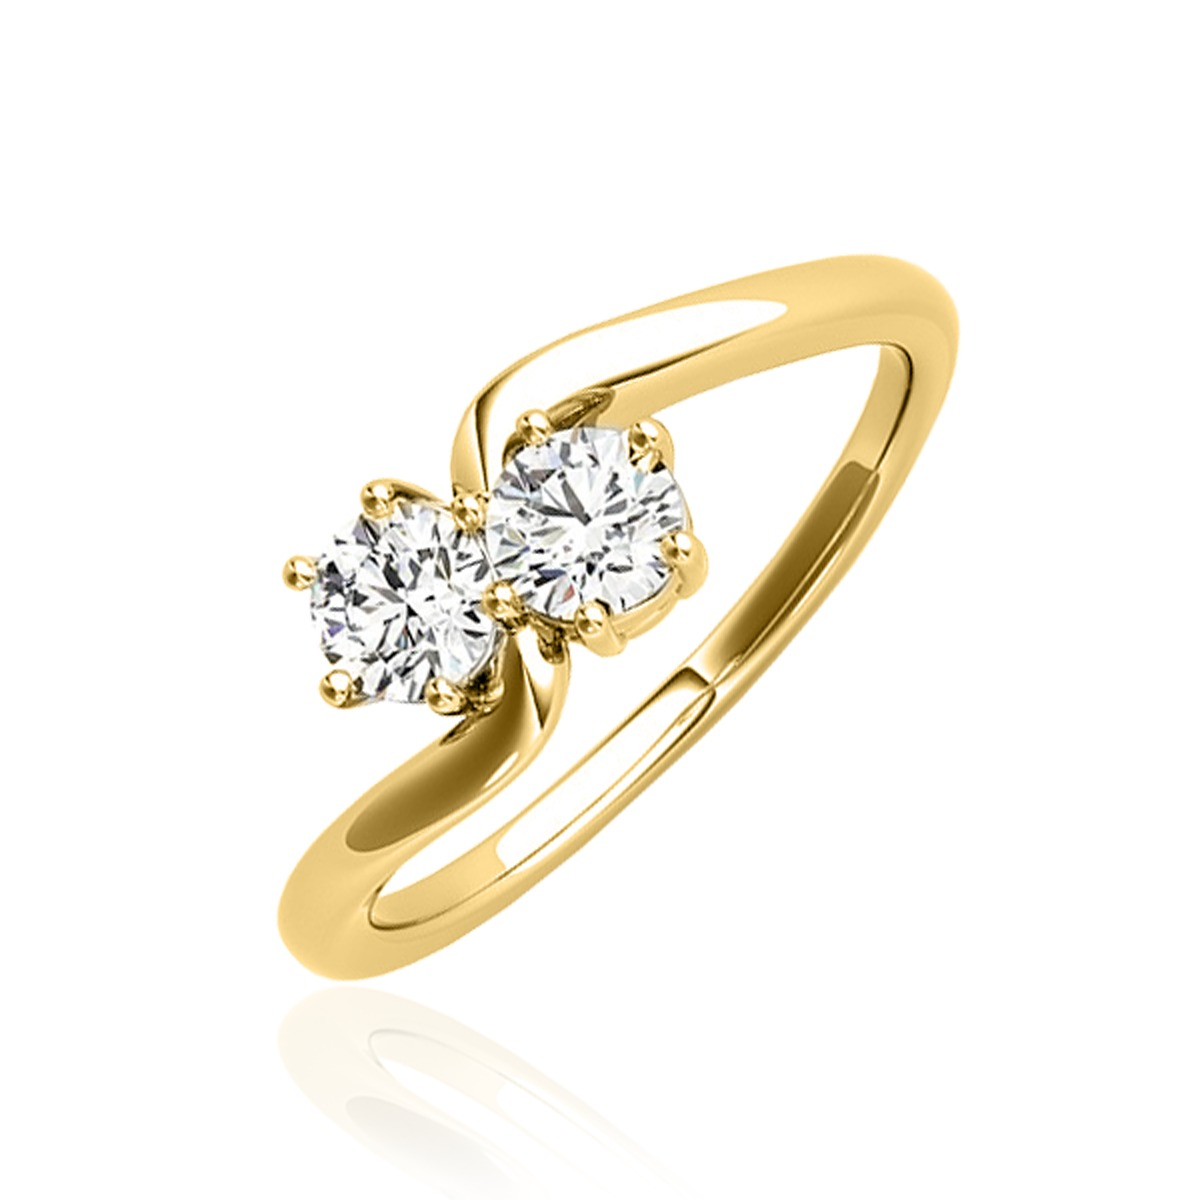 1/4 Carat T.W. Round Cut Diamond Two Stone Ring 10K Yellow Gold